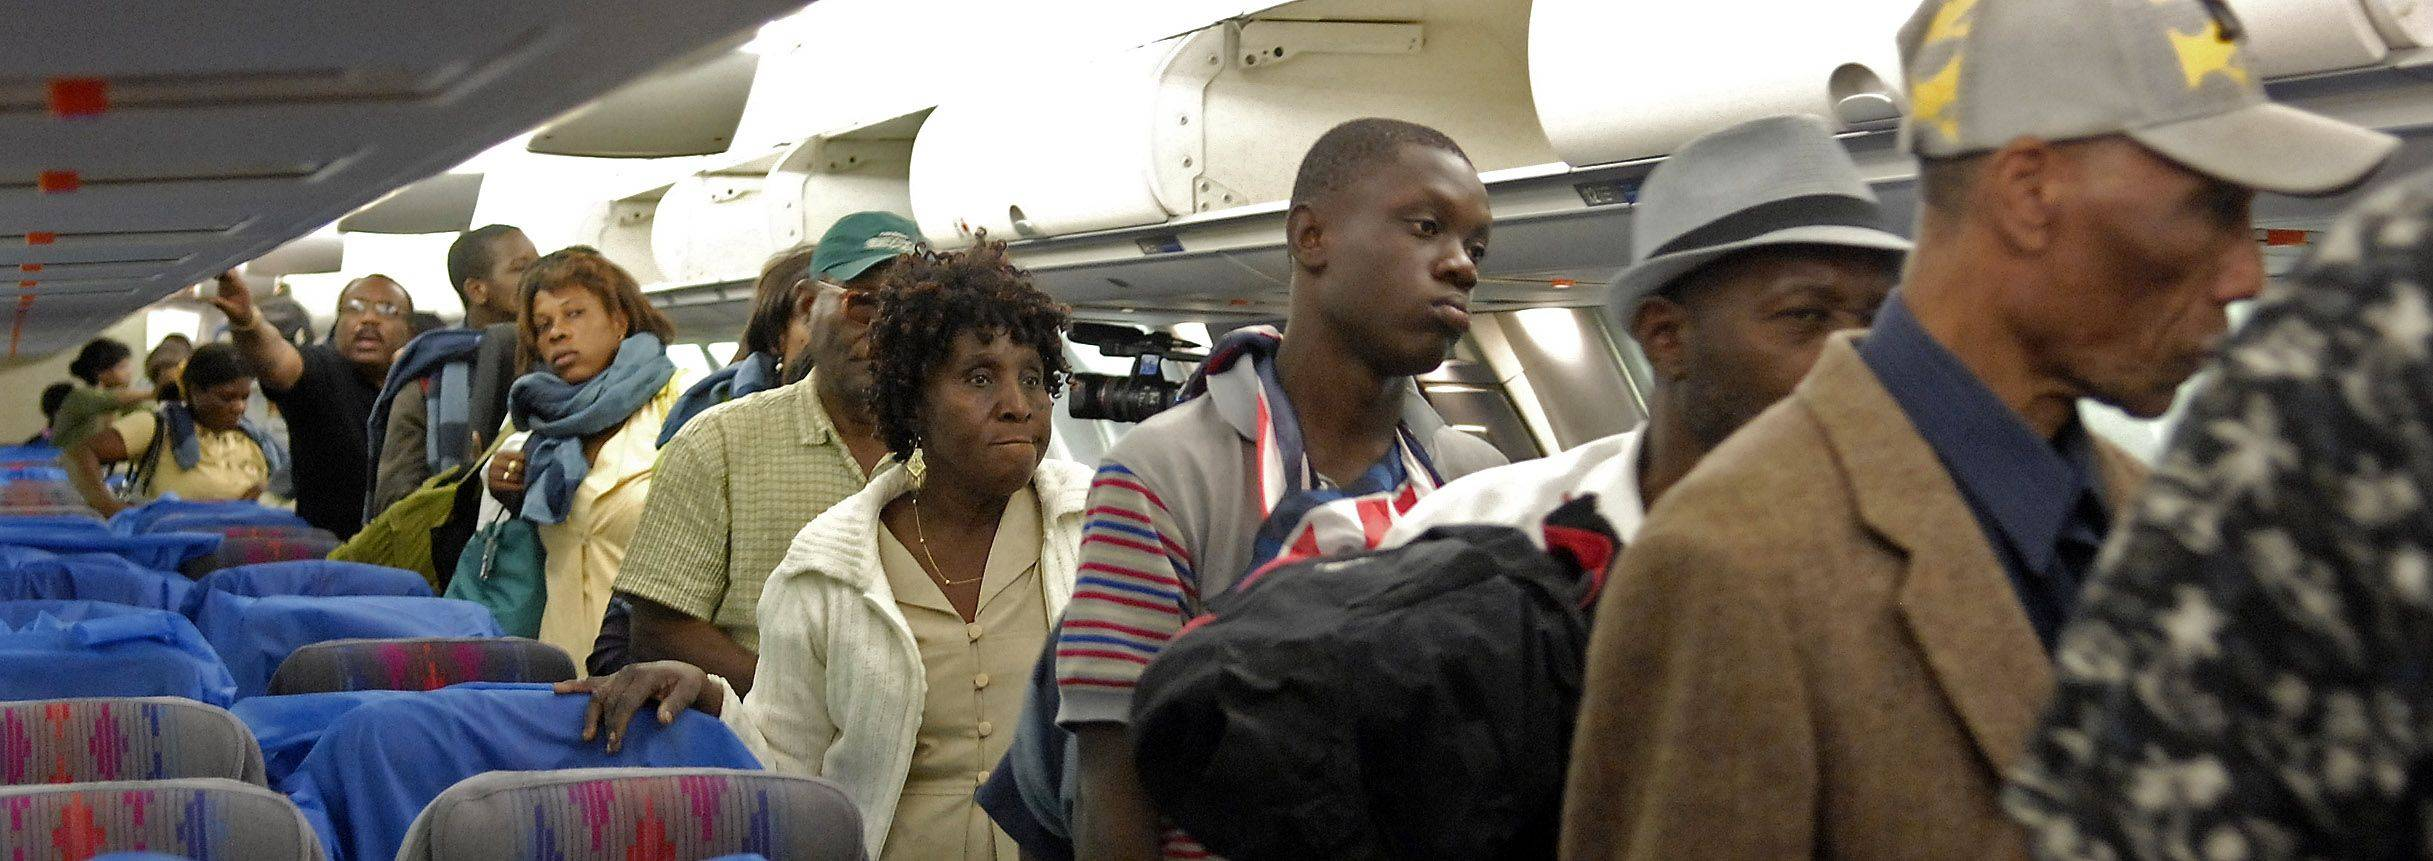 Evacuees from Haiti deplane in Chicago Wednesday night.